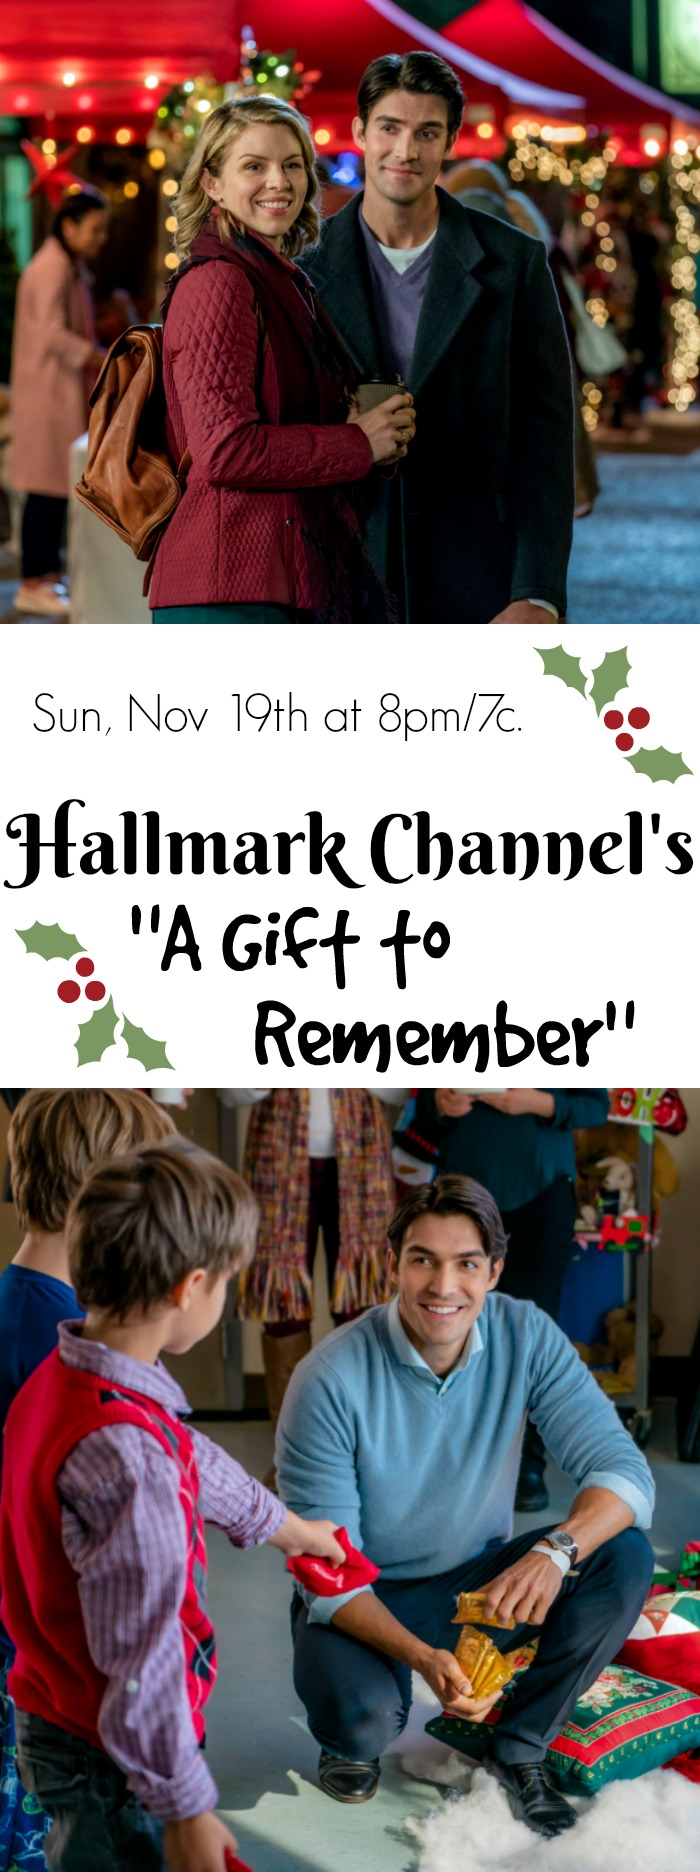 Hallmark Channel's A Gift to Remember